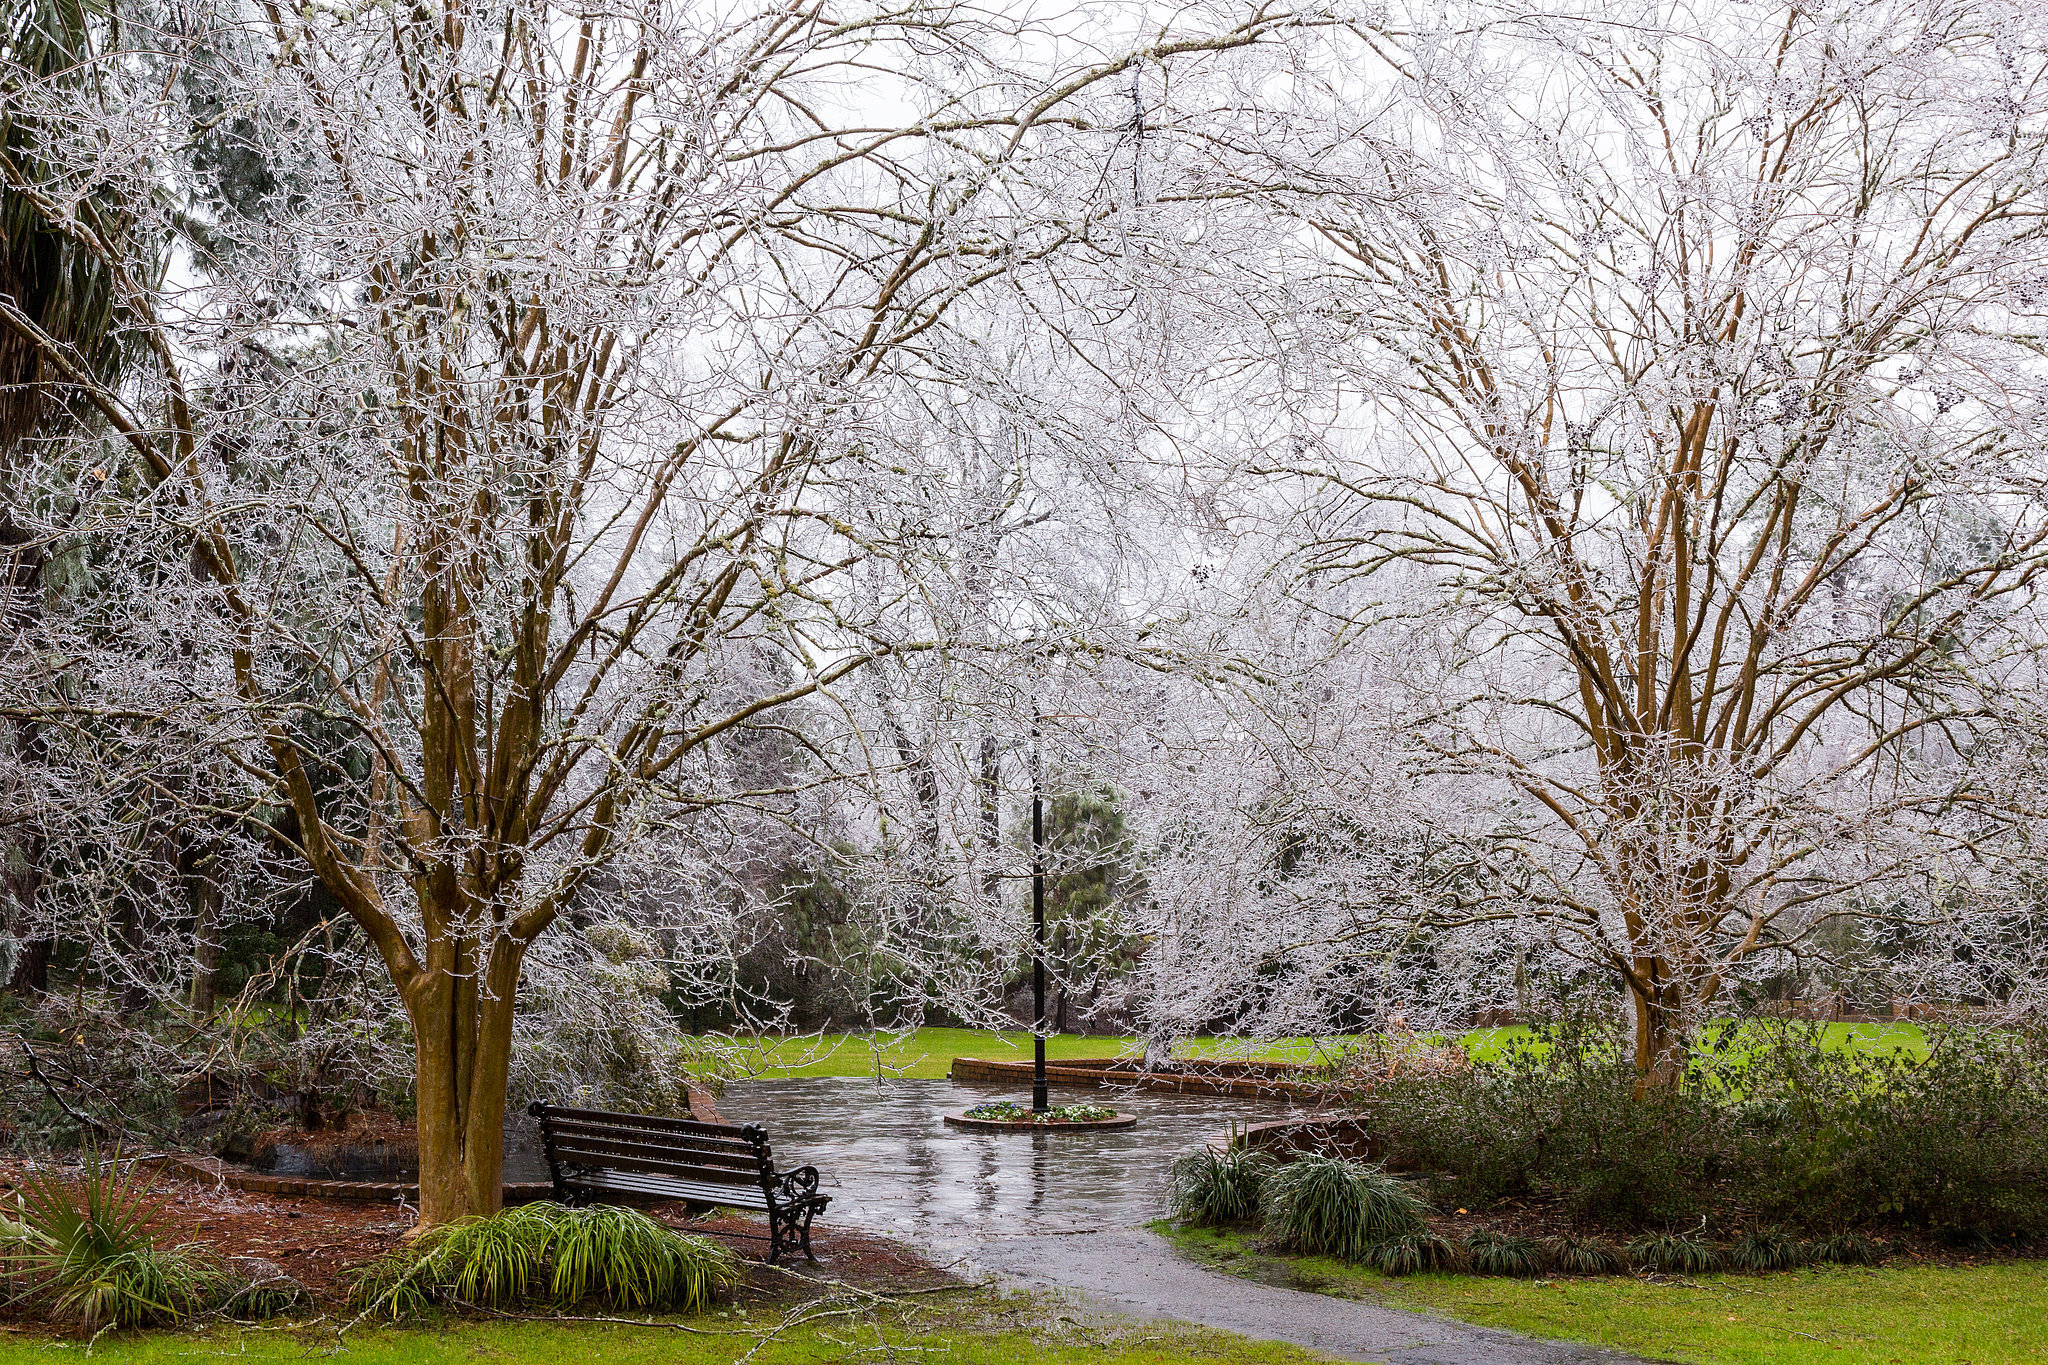 Ice coated the trees in Summerville, SC, during the rare Winter storm.